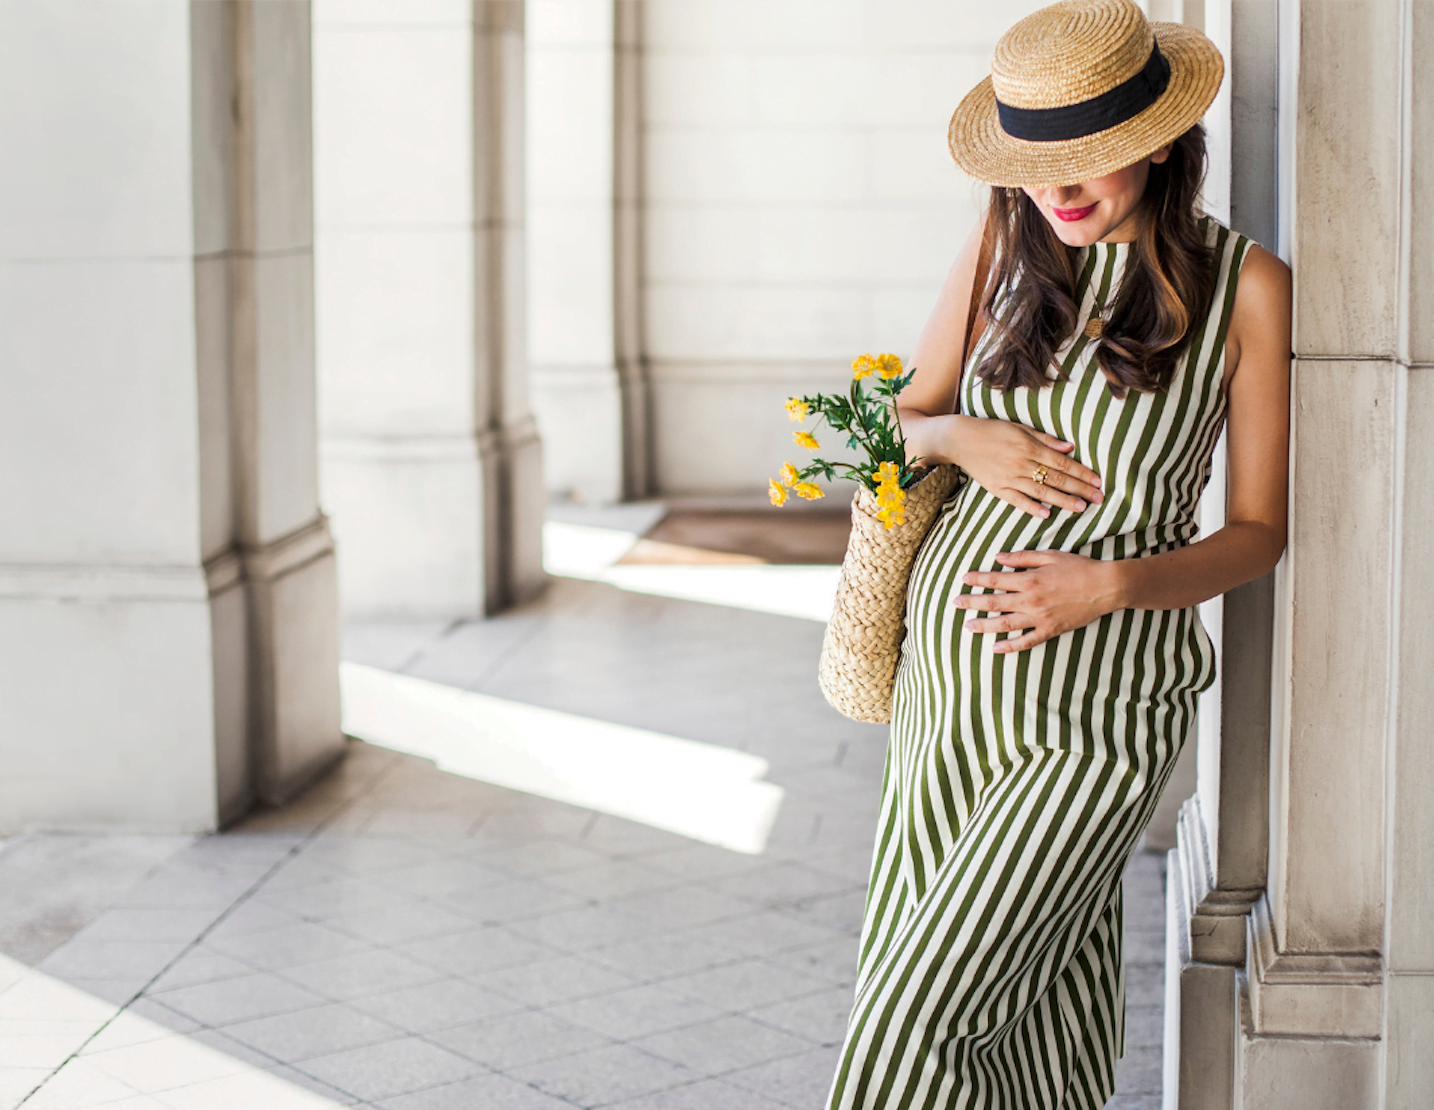 Pregnancy during laser hair removal